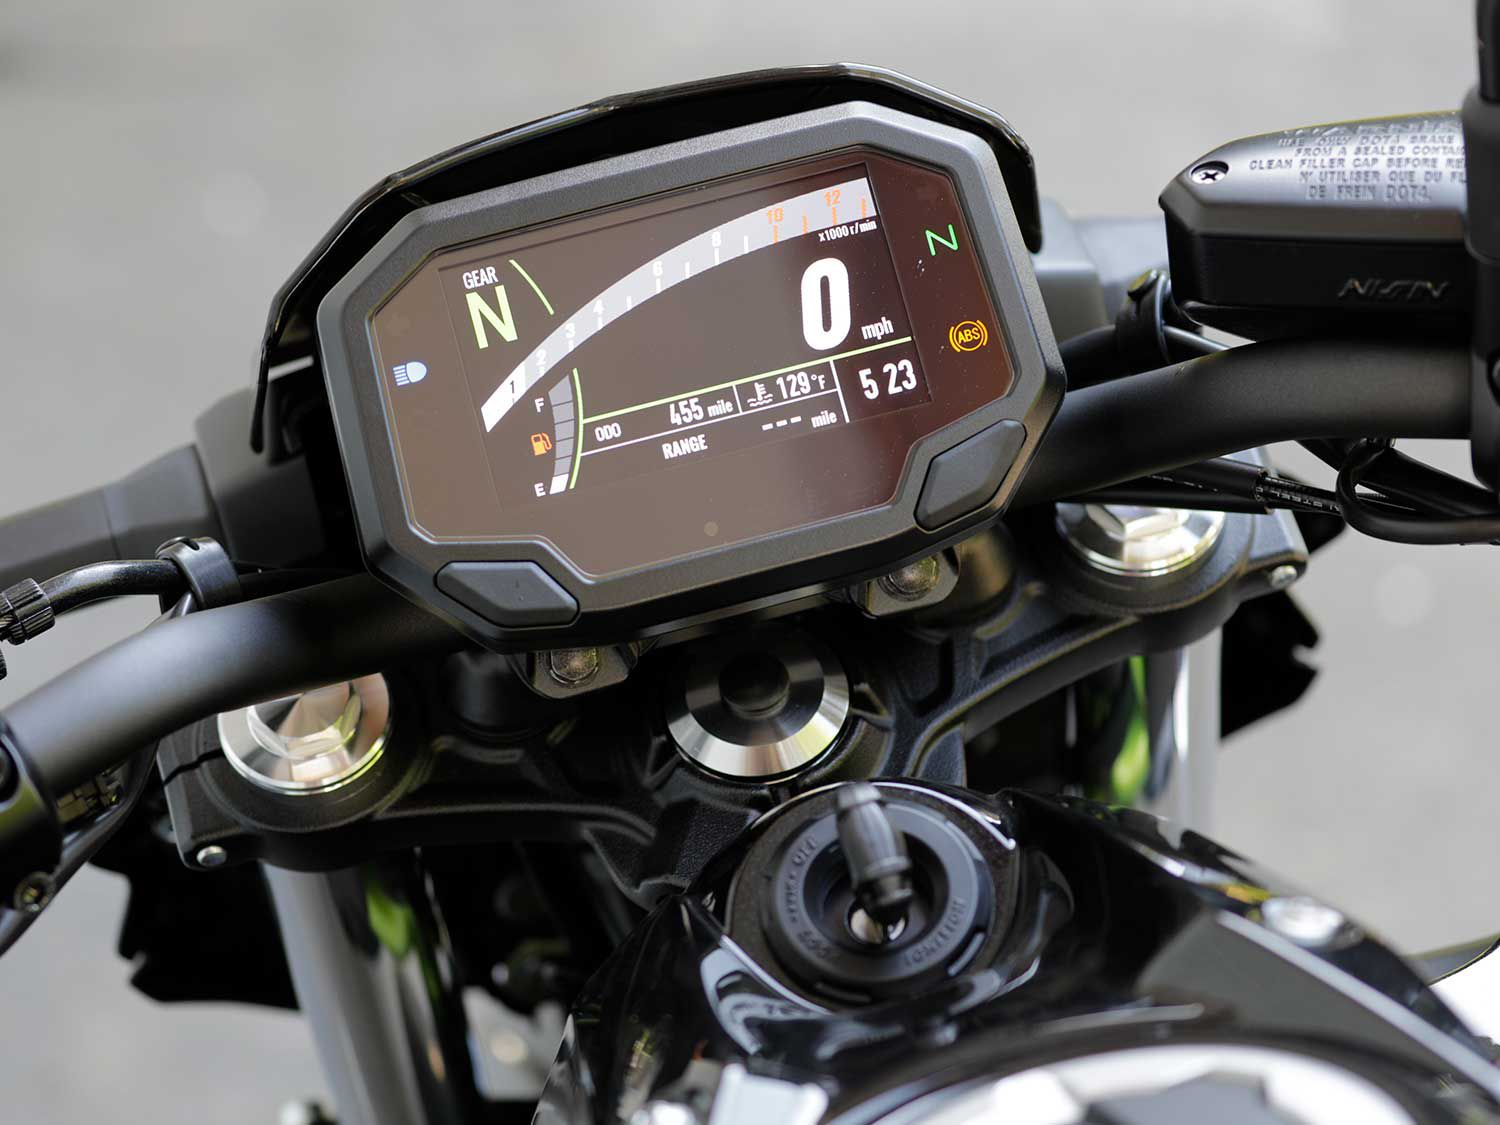 A crisp 4.3-inch color TFT dash graces the Z650 ABS. It's bright and easy to read, day or night.